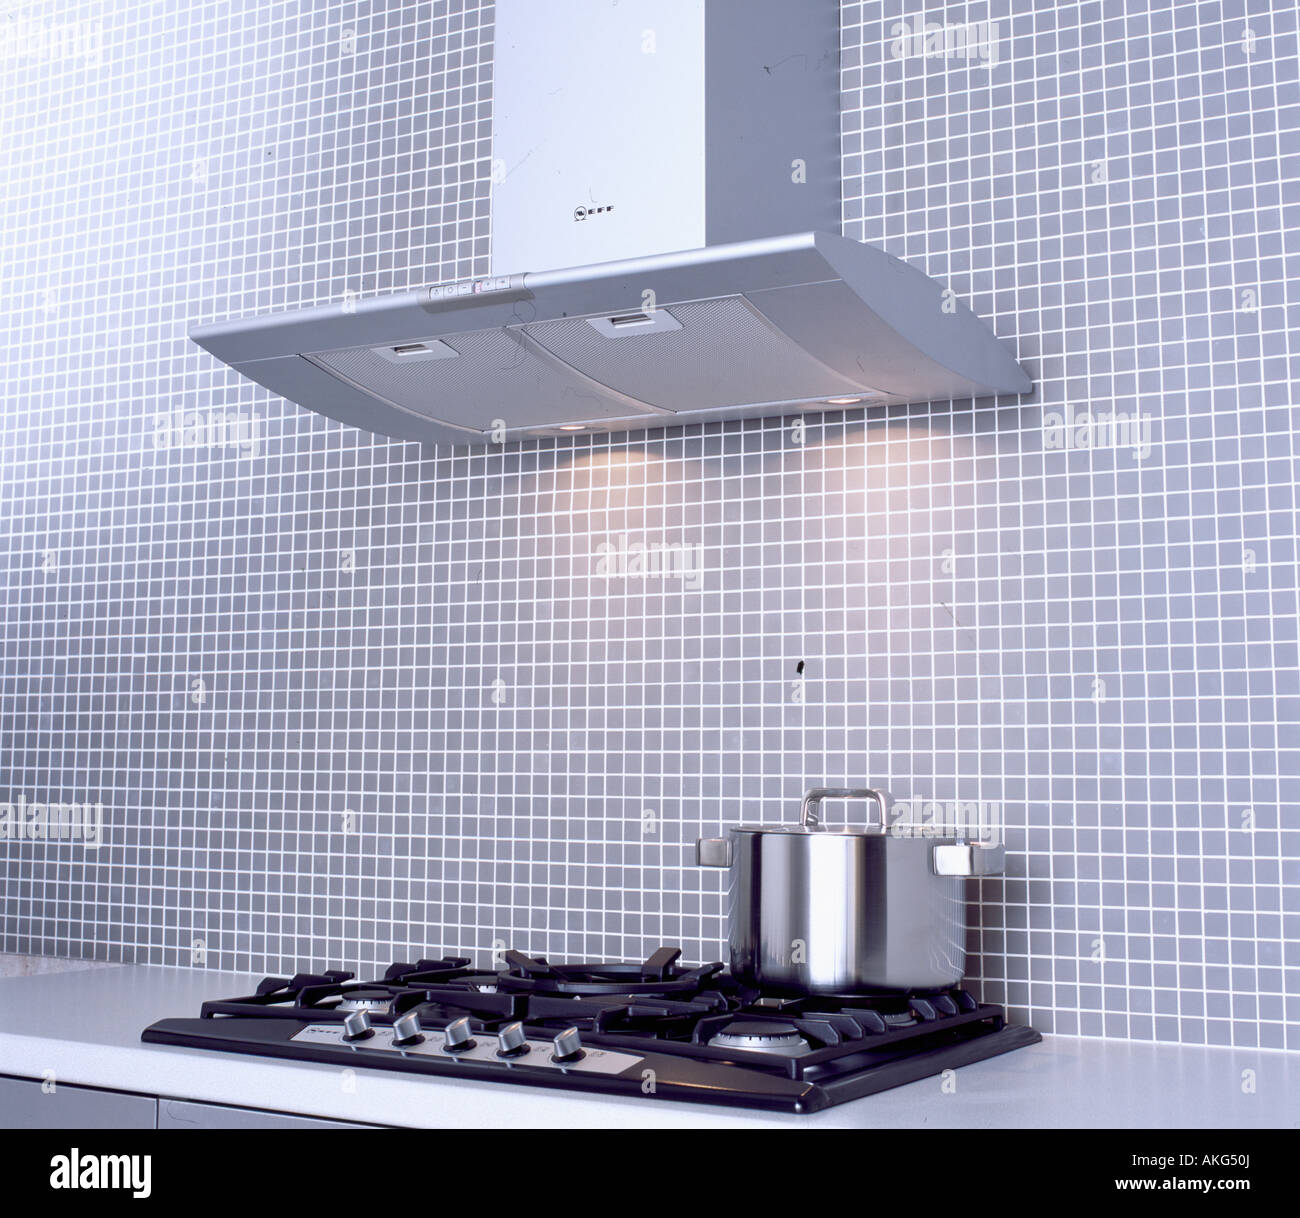 Close Up Of Extractor Fan Above Stainless Steel Pan On Black Hob In Stock Photo Alamy